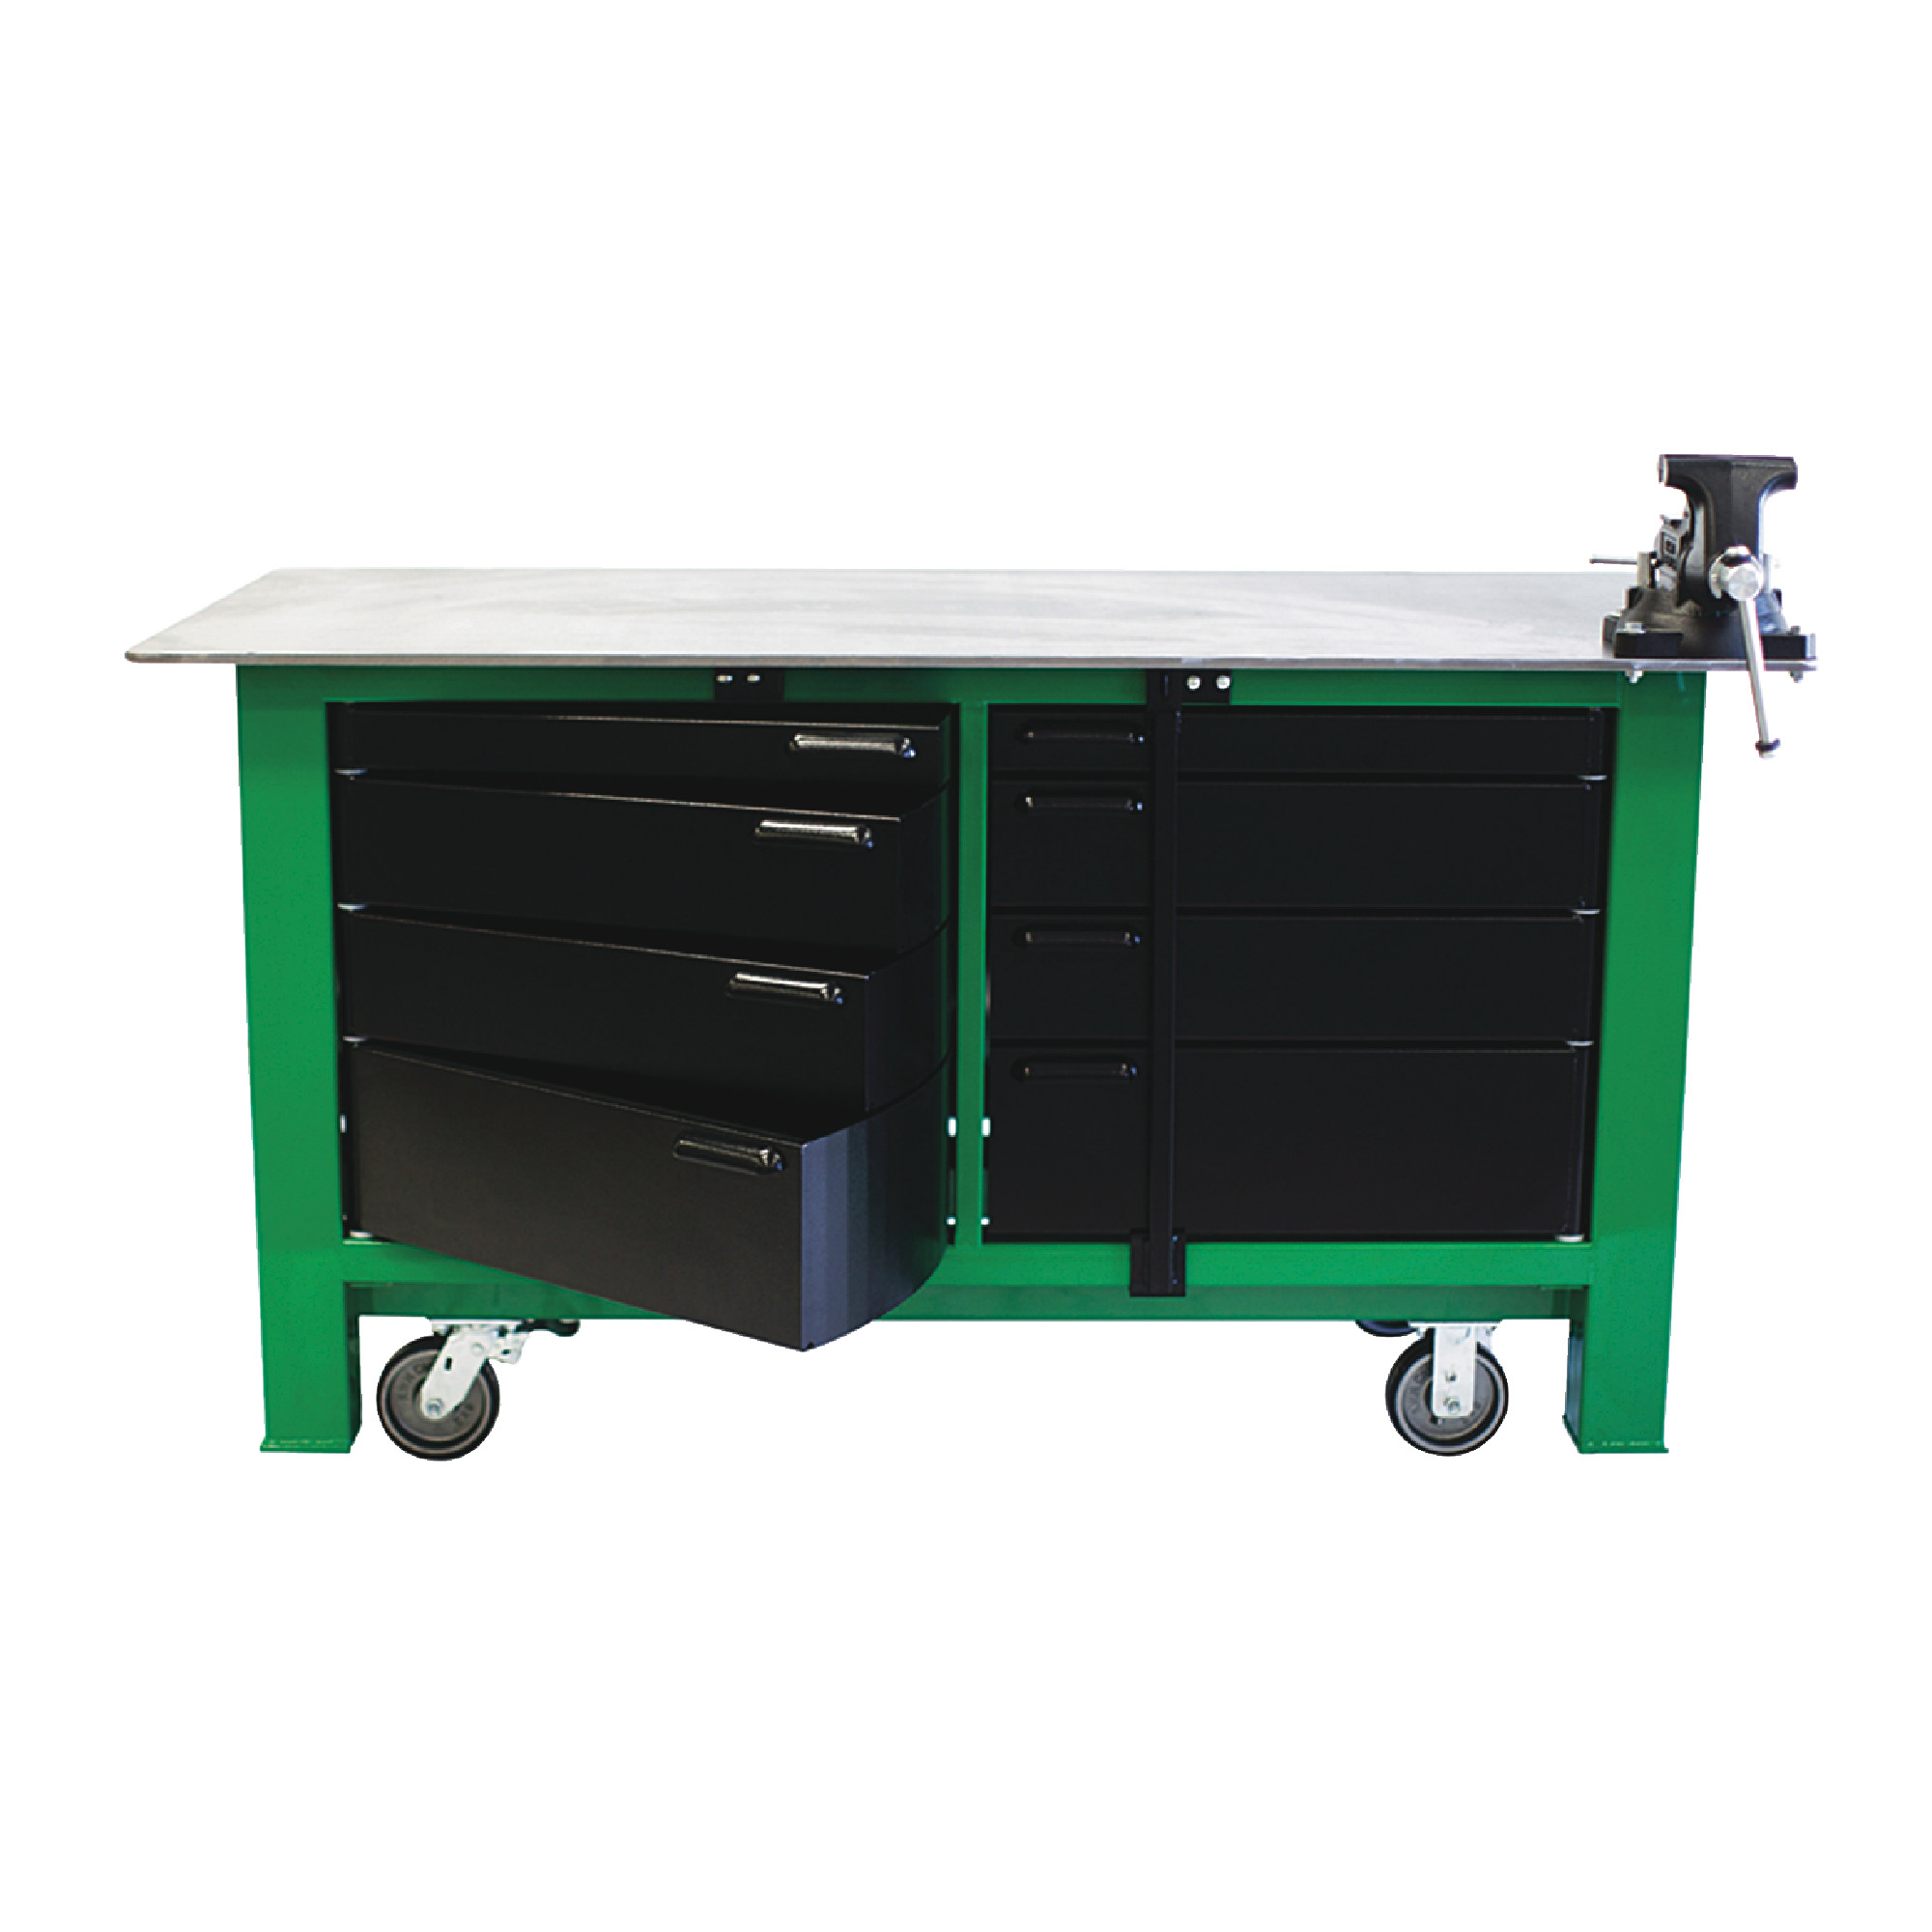 6' Long With Casters Two Full Banks Of Drawers